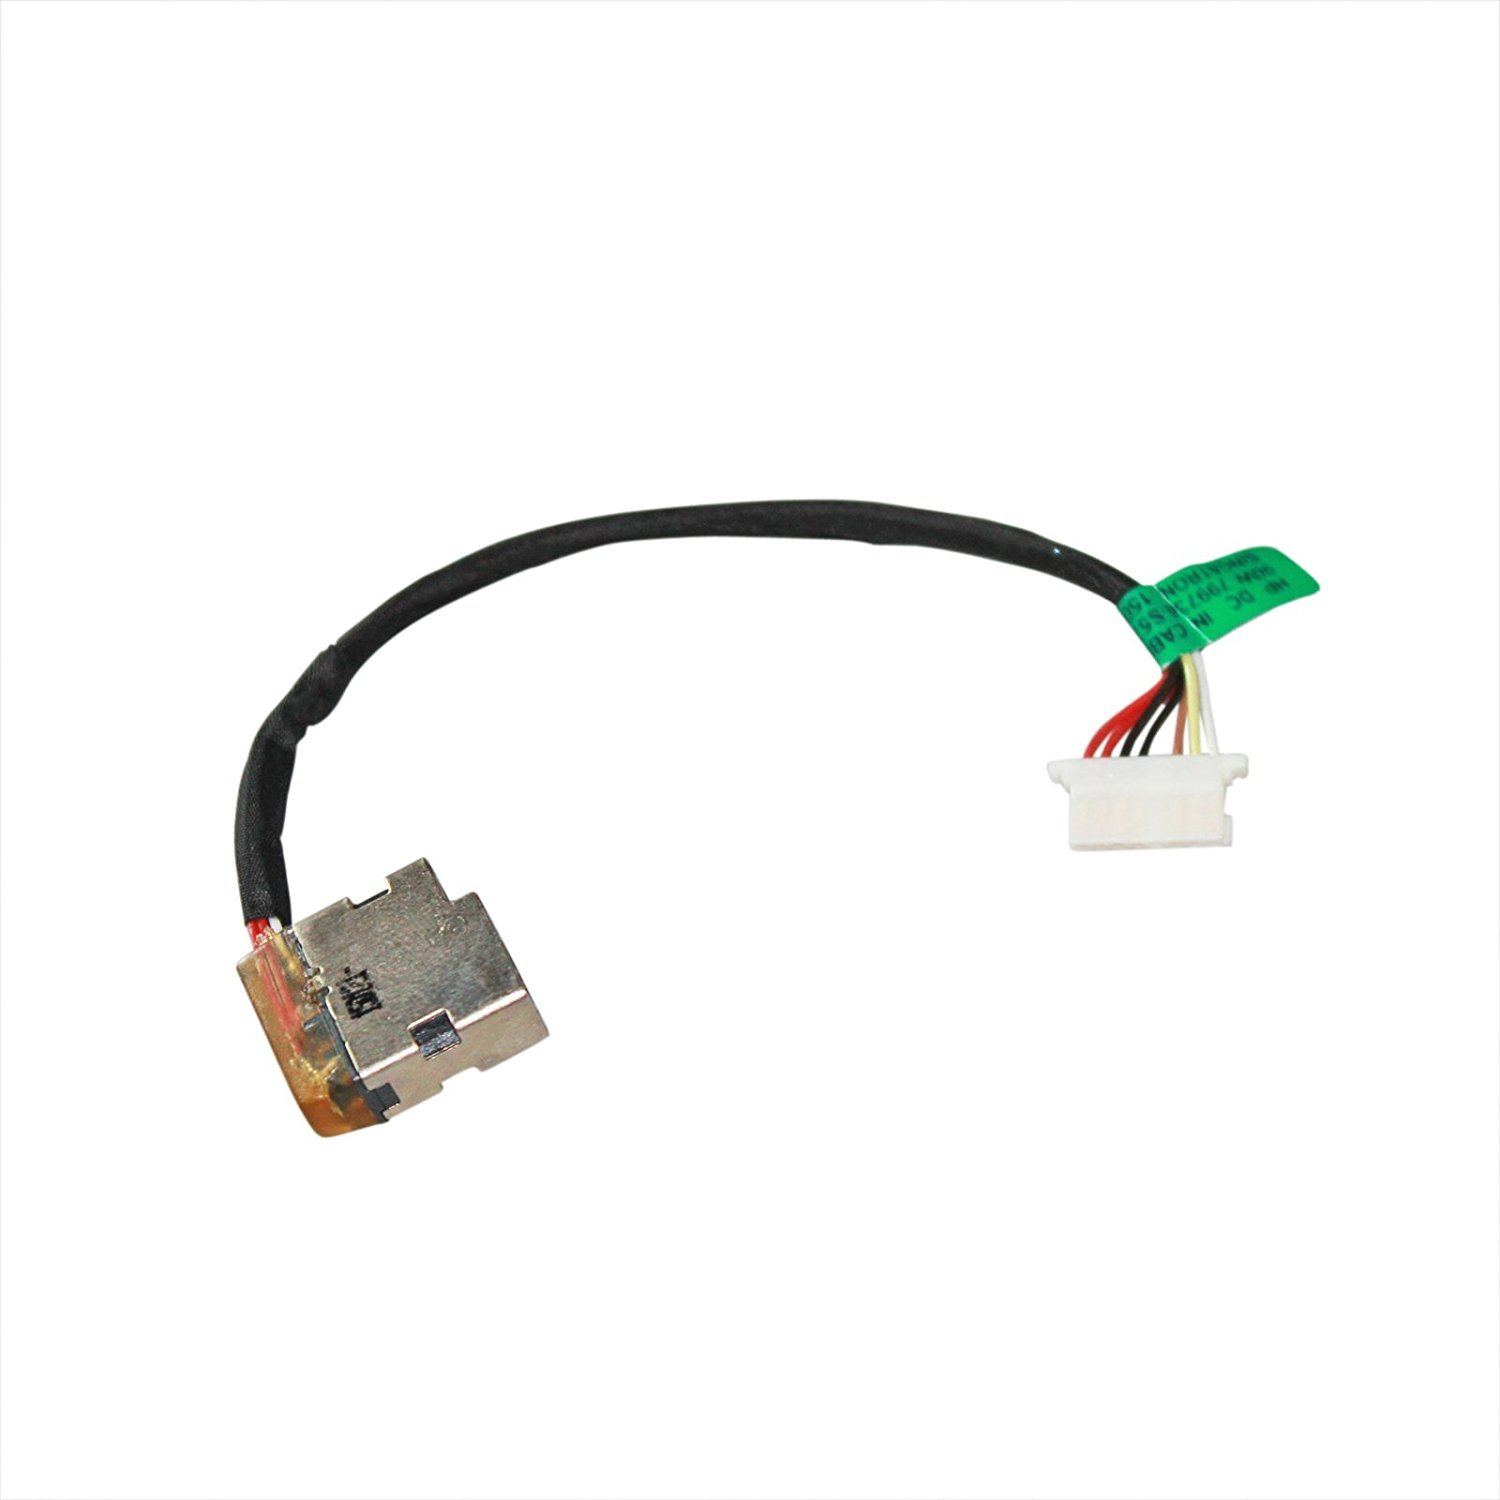 GinTai DC Power Jack Connector Cable Replacement for HP Envy M6-P M6-P113DX 812681-001